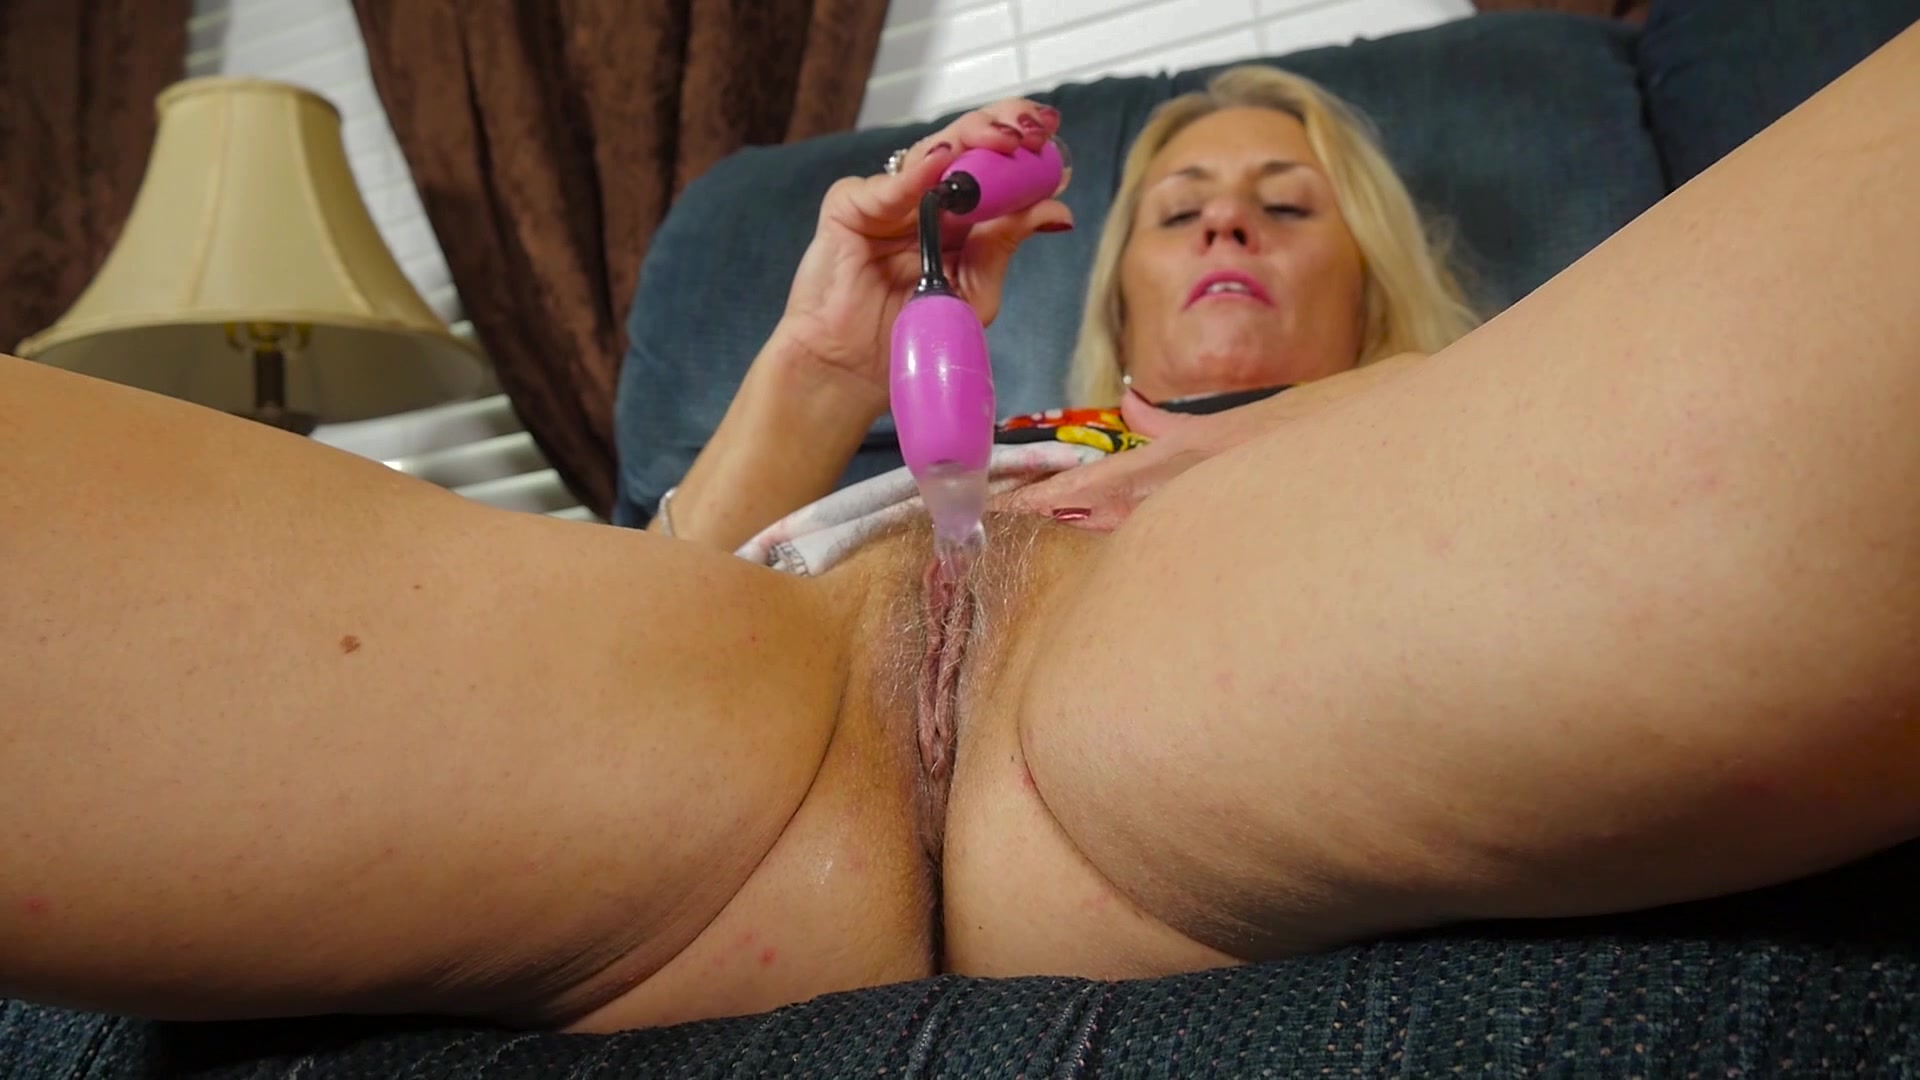 milf breaks out the toys to please her mature pussy from aj presents